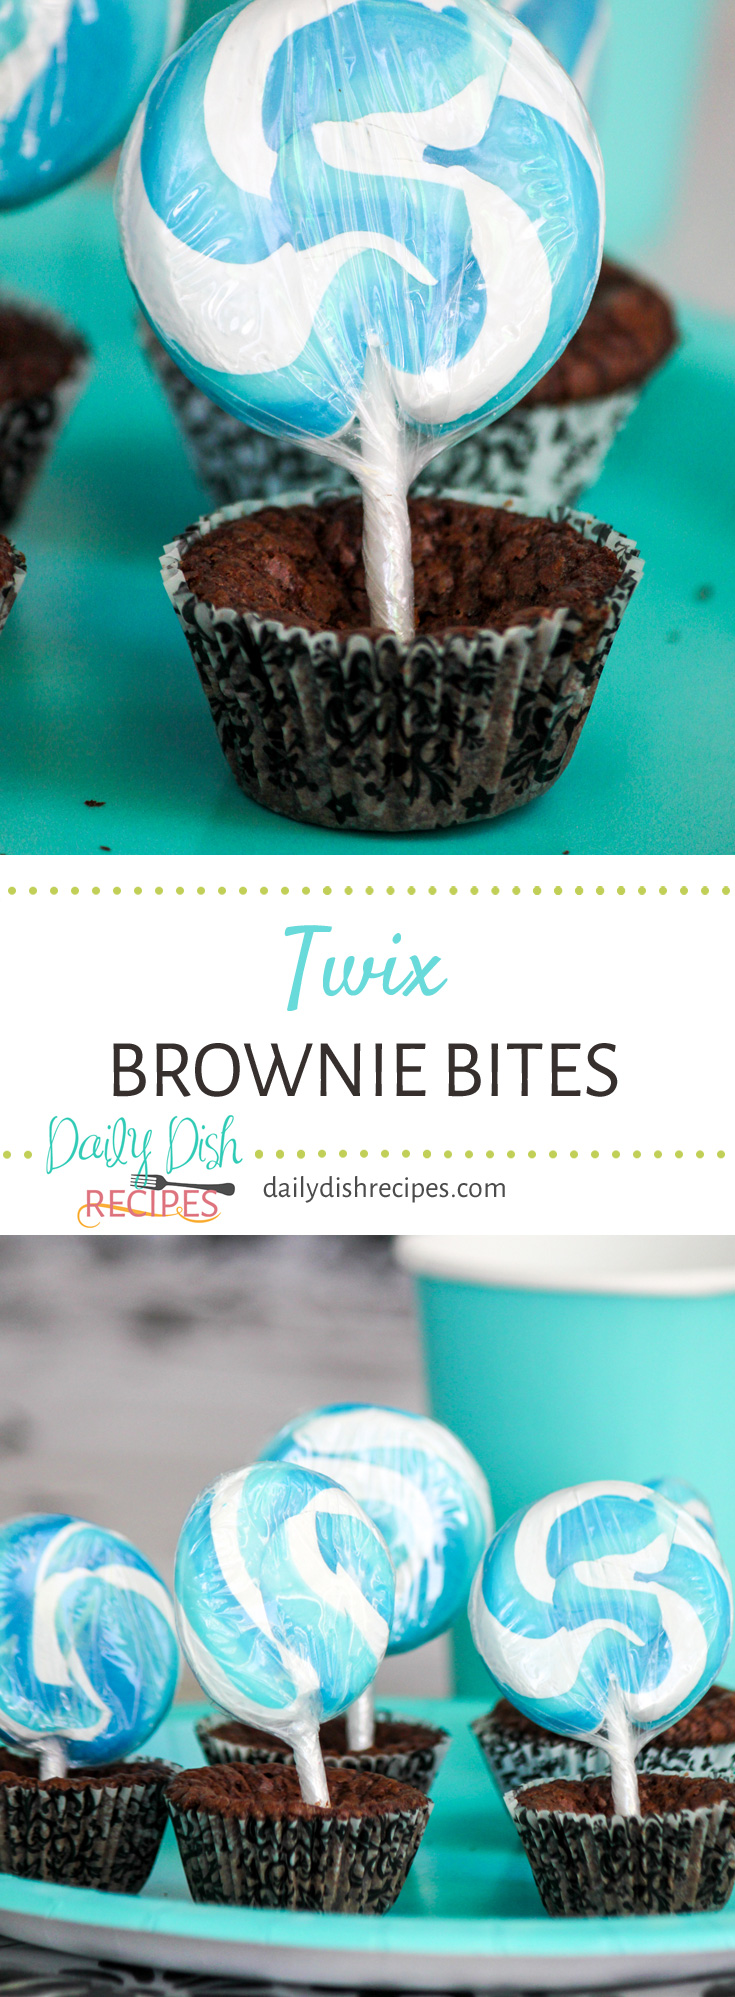 Gooey Caramel Twix Candy Bars combined into rich, moist and chocolaty brownie batter. Twix Brownie Bites are baked up in a mini muffin pan making them the perfect size for any party!